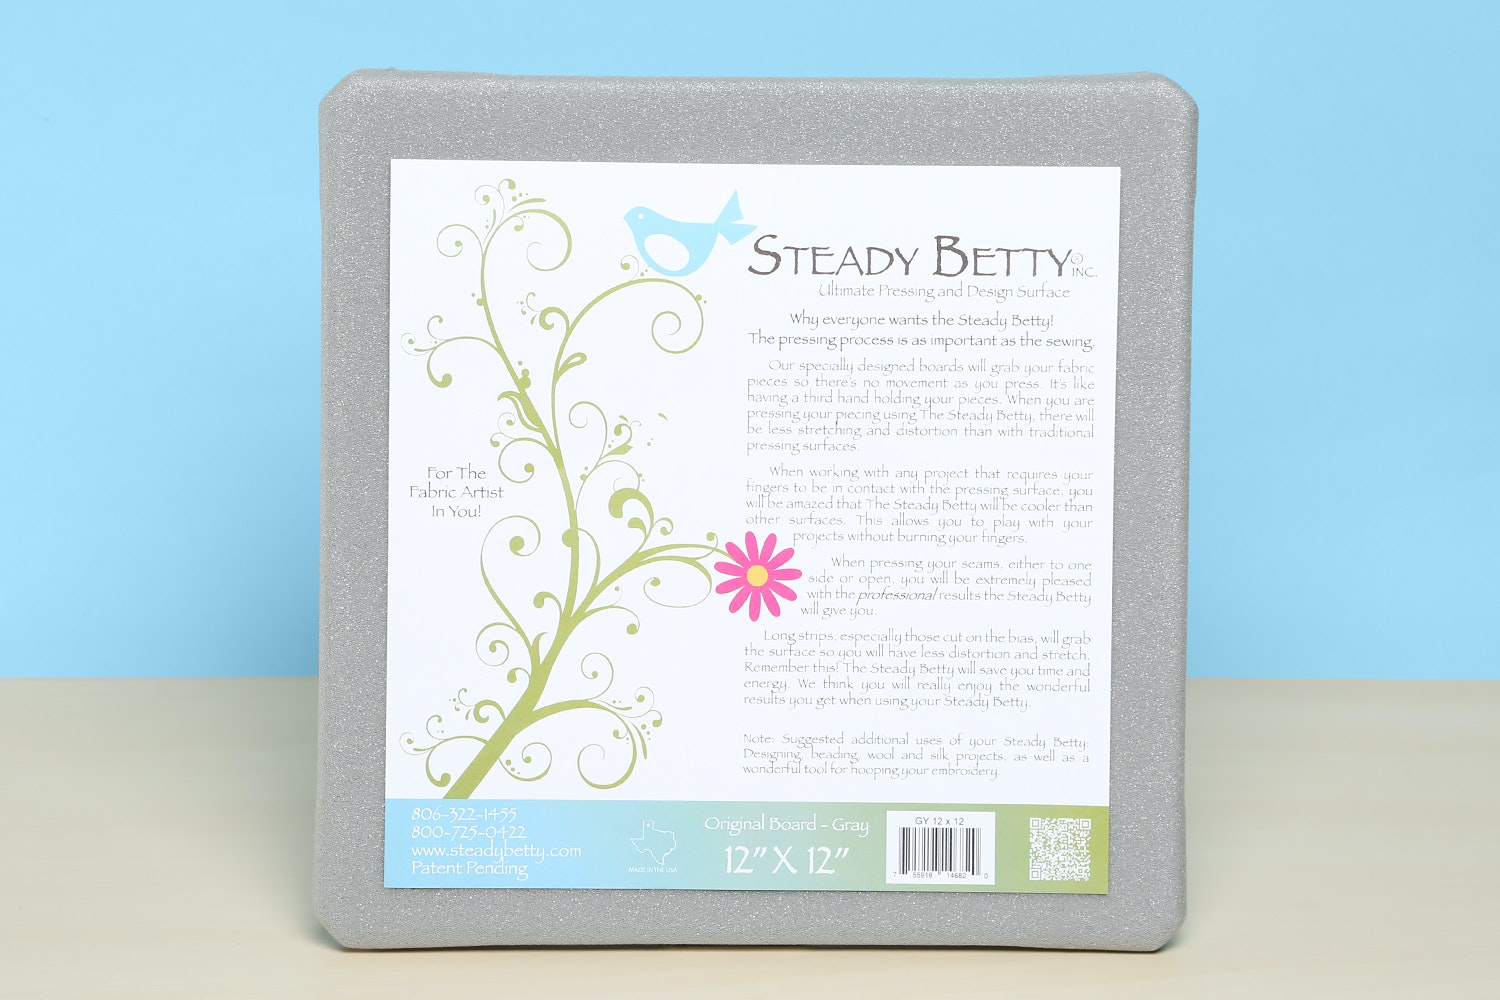 Steady Betty Pressing Mat and Design Surface